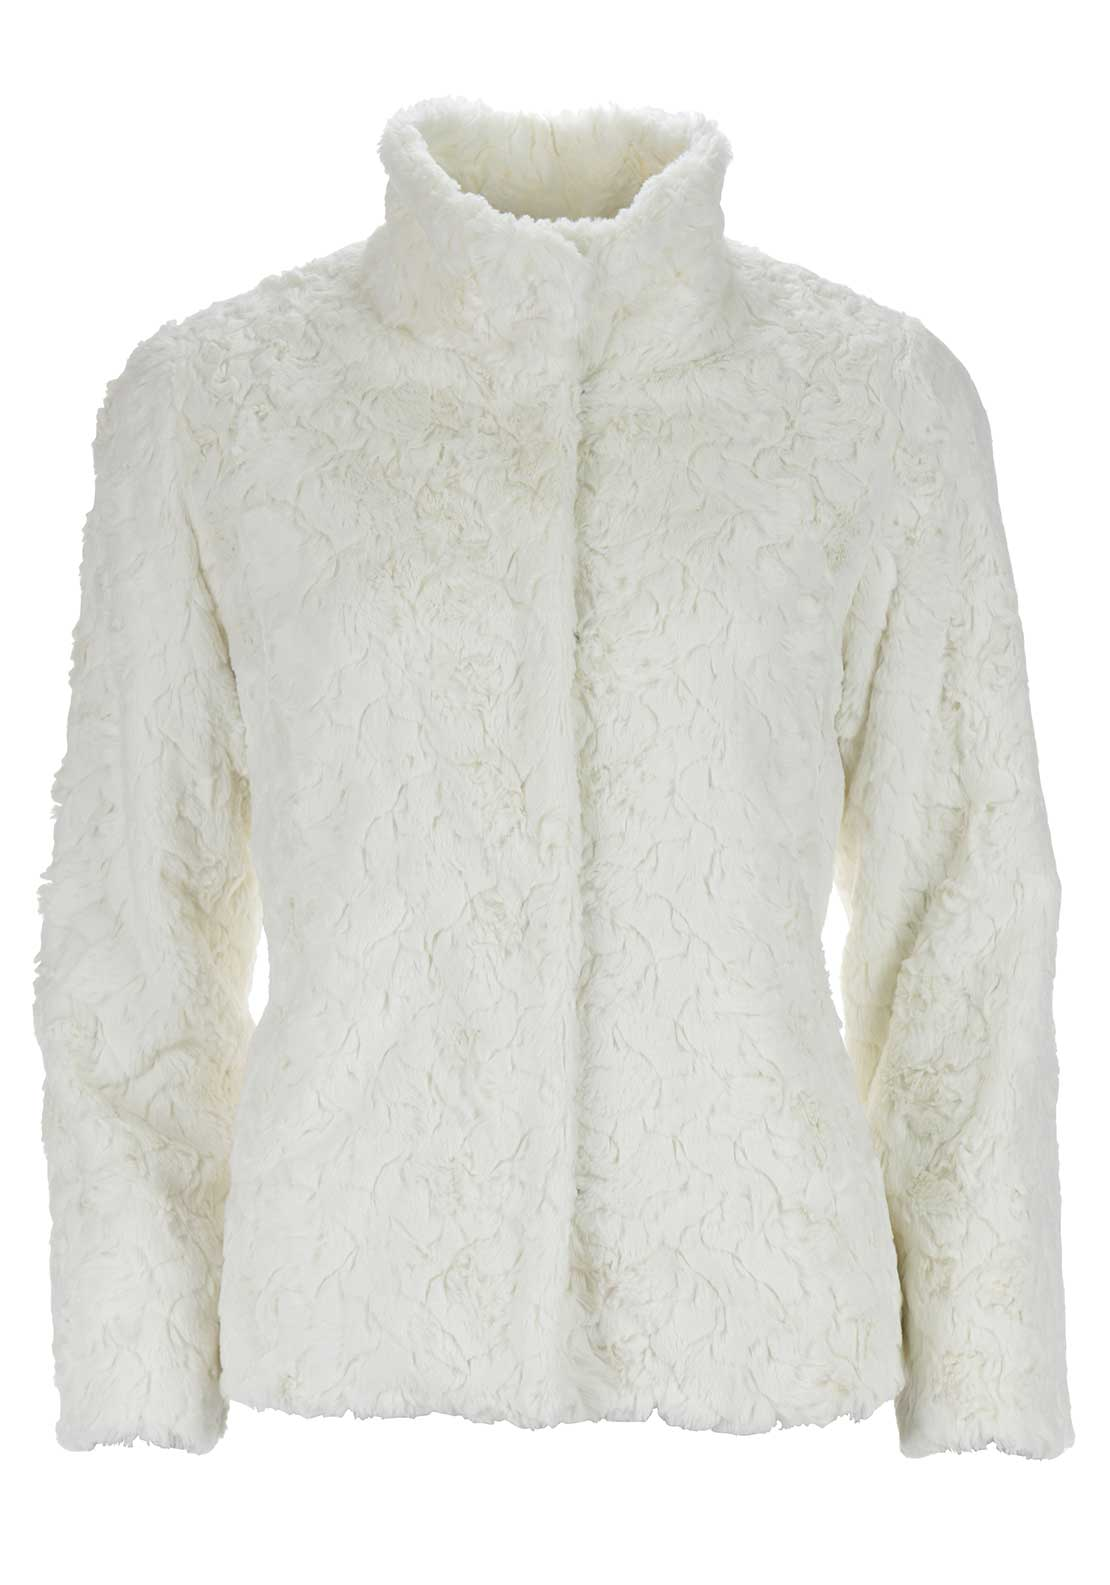 Libra Textured Faux Fur Jacket, Cream